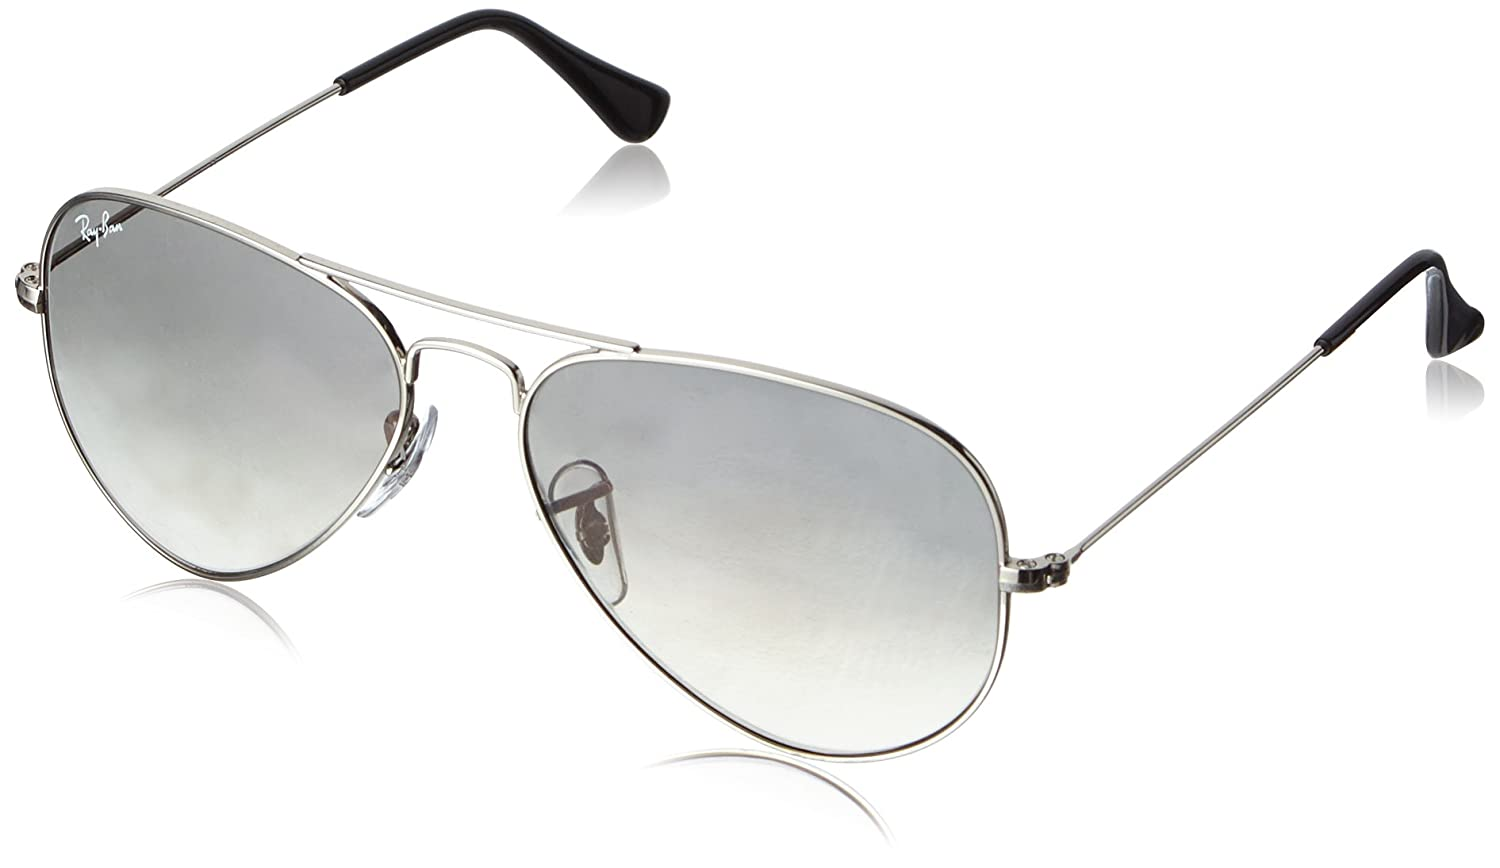 aviator frame glasses  Amazon.com: Ray-Ban 0RB3025 Aviator Metal Non-Polarized Sunglasses ...